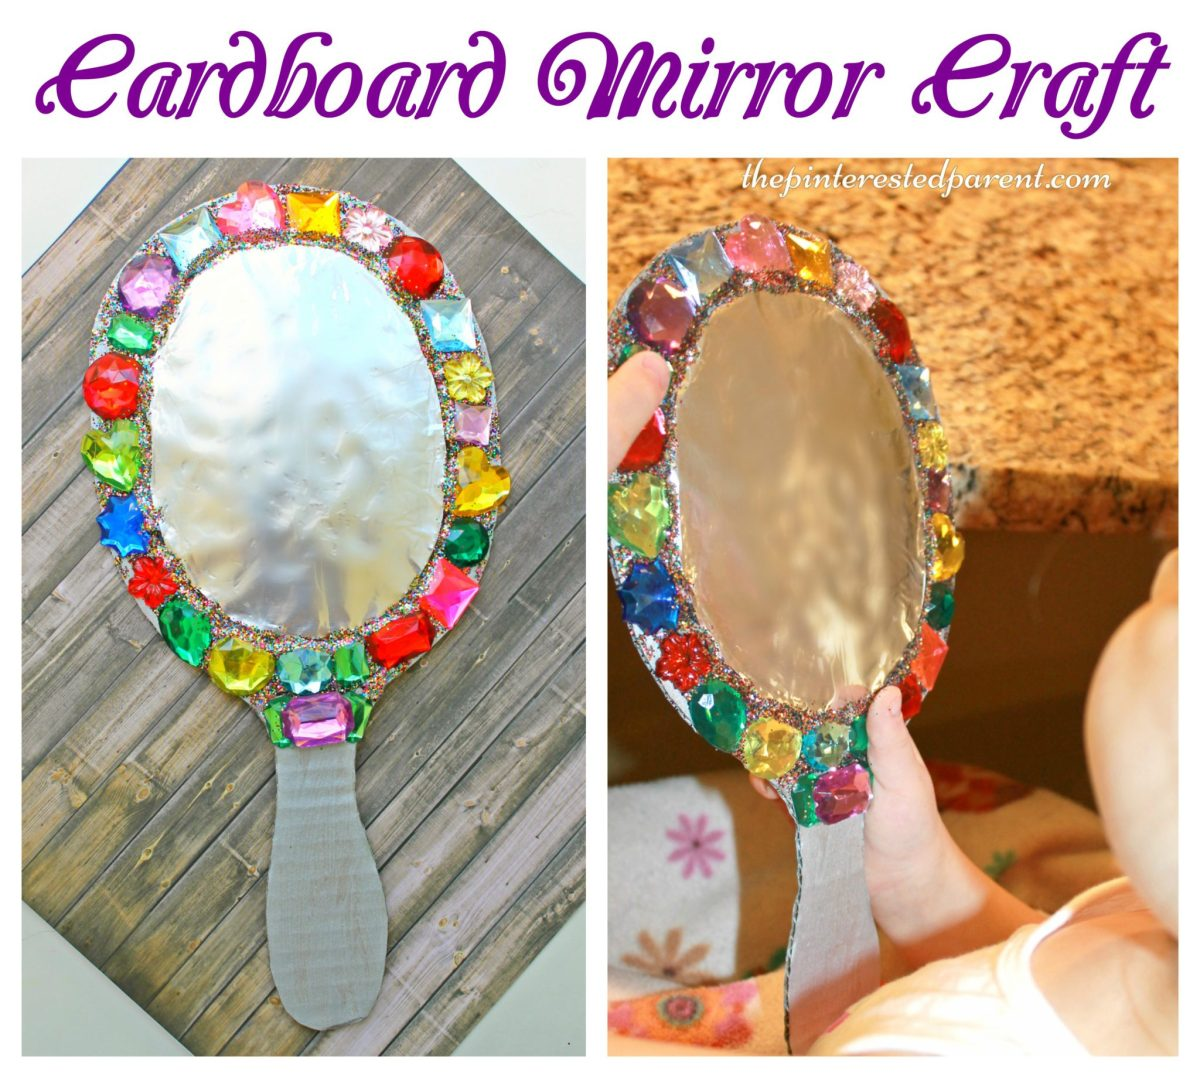 Jeweled Cardboard Mirror Craft